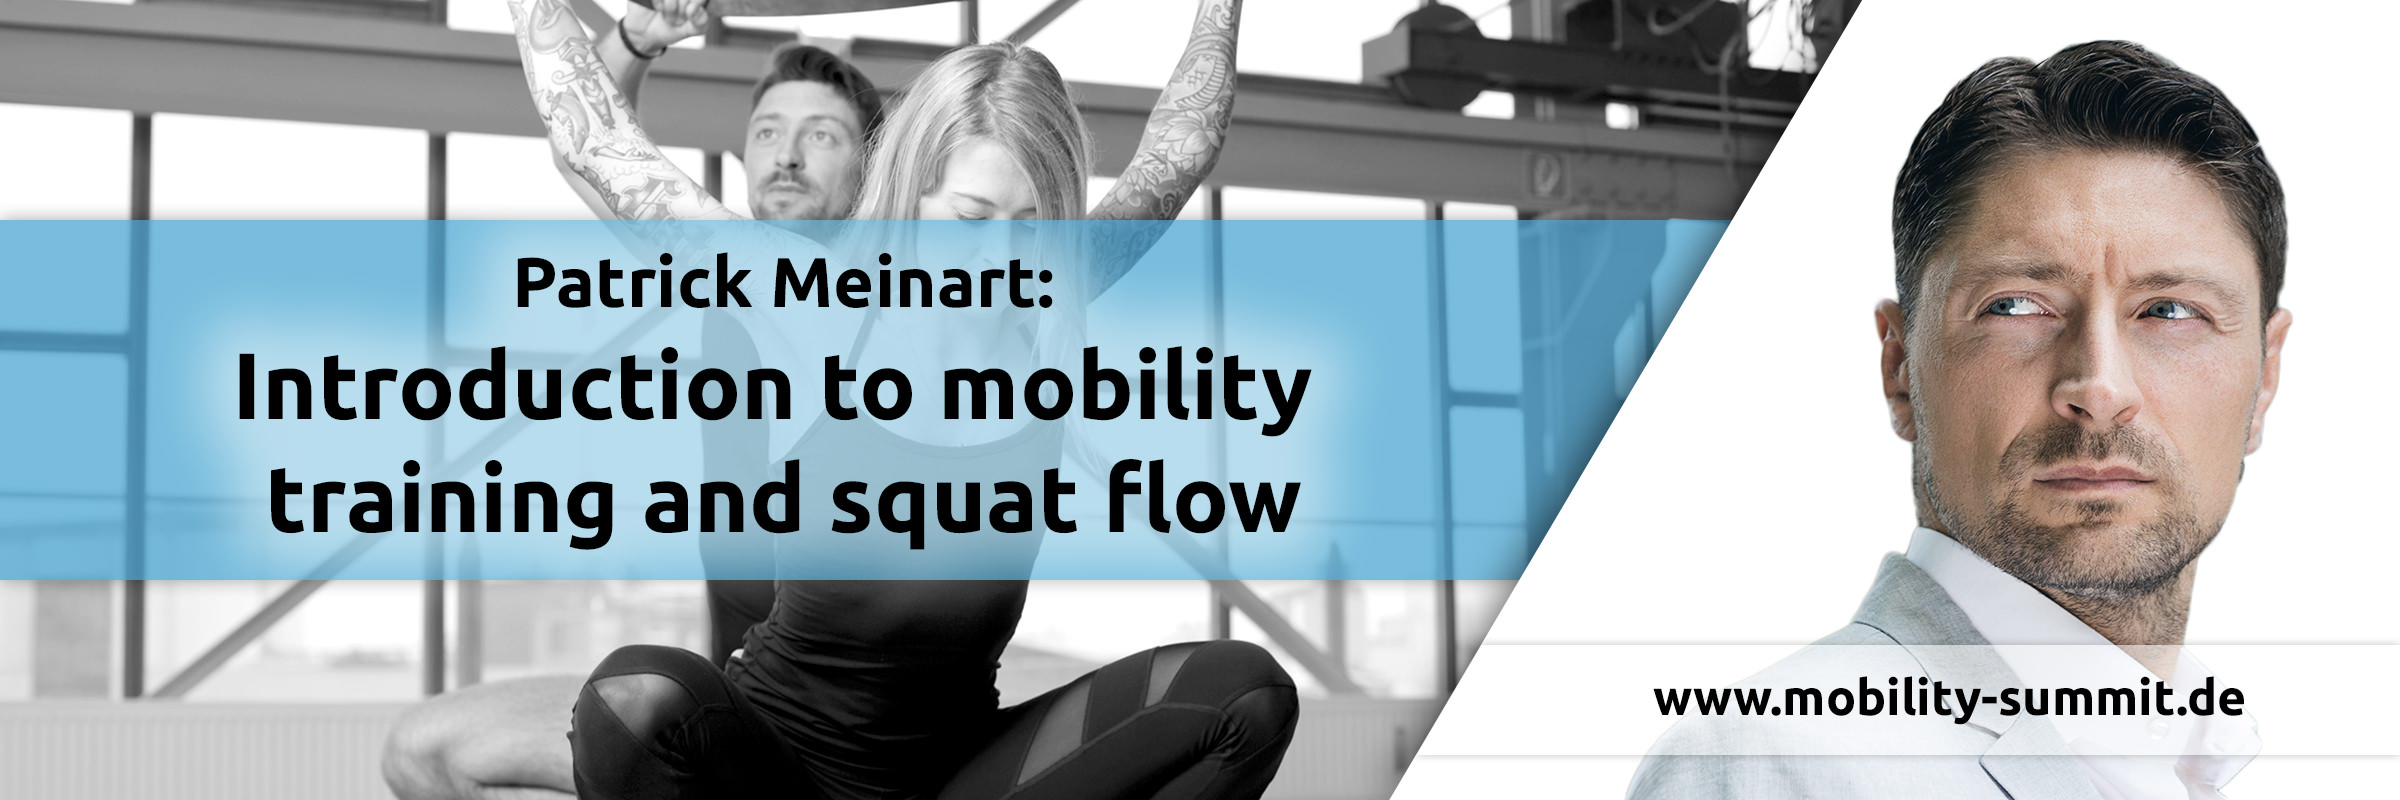 Patrick Meinart will be a speaker of the Mobility & Fascia Summit 2016